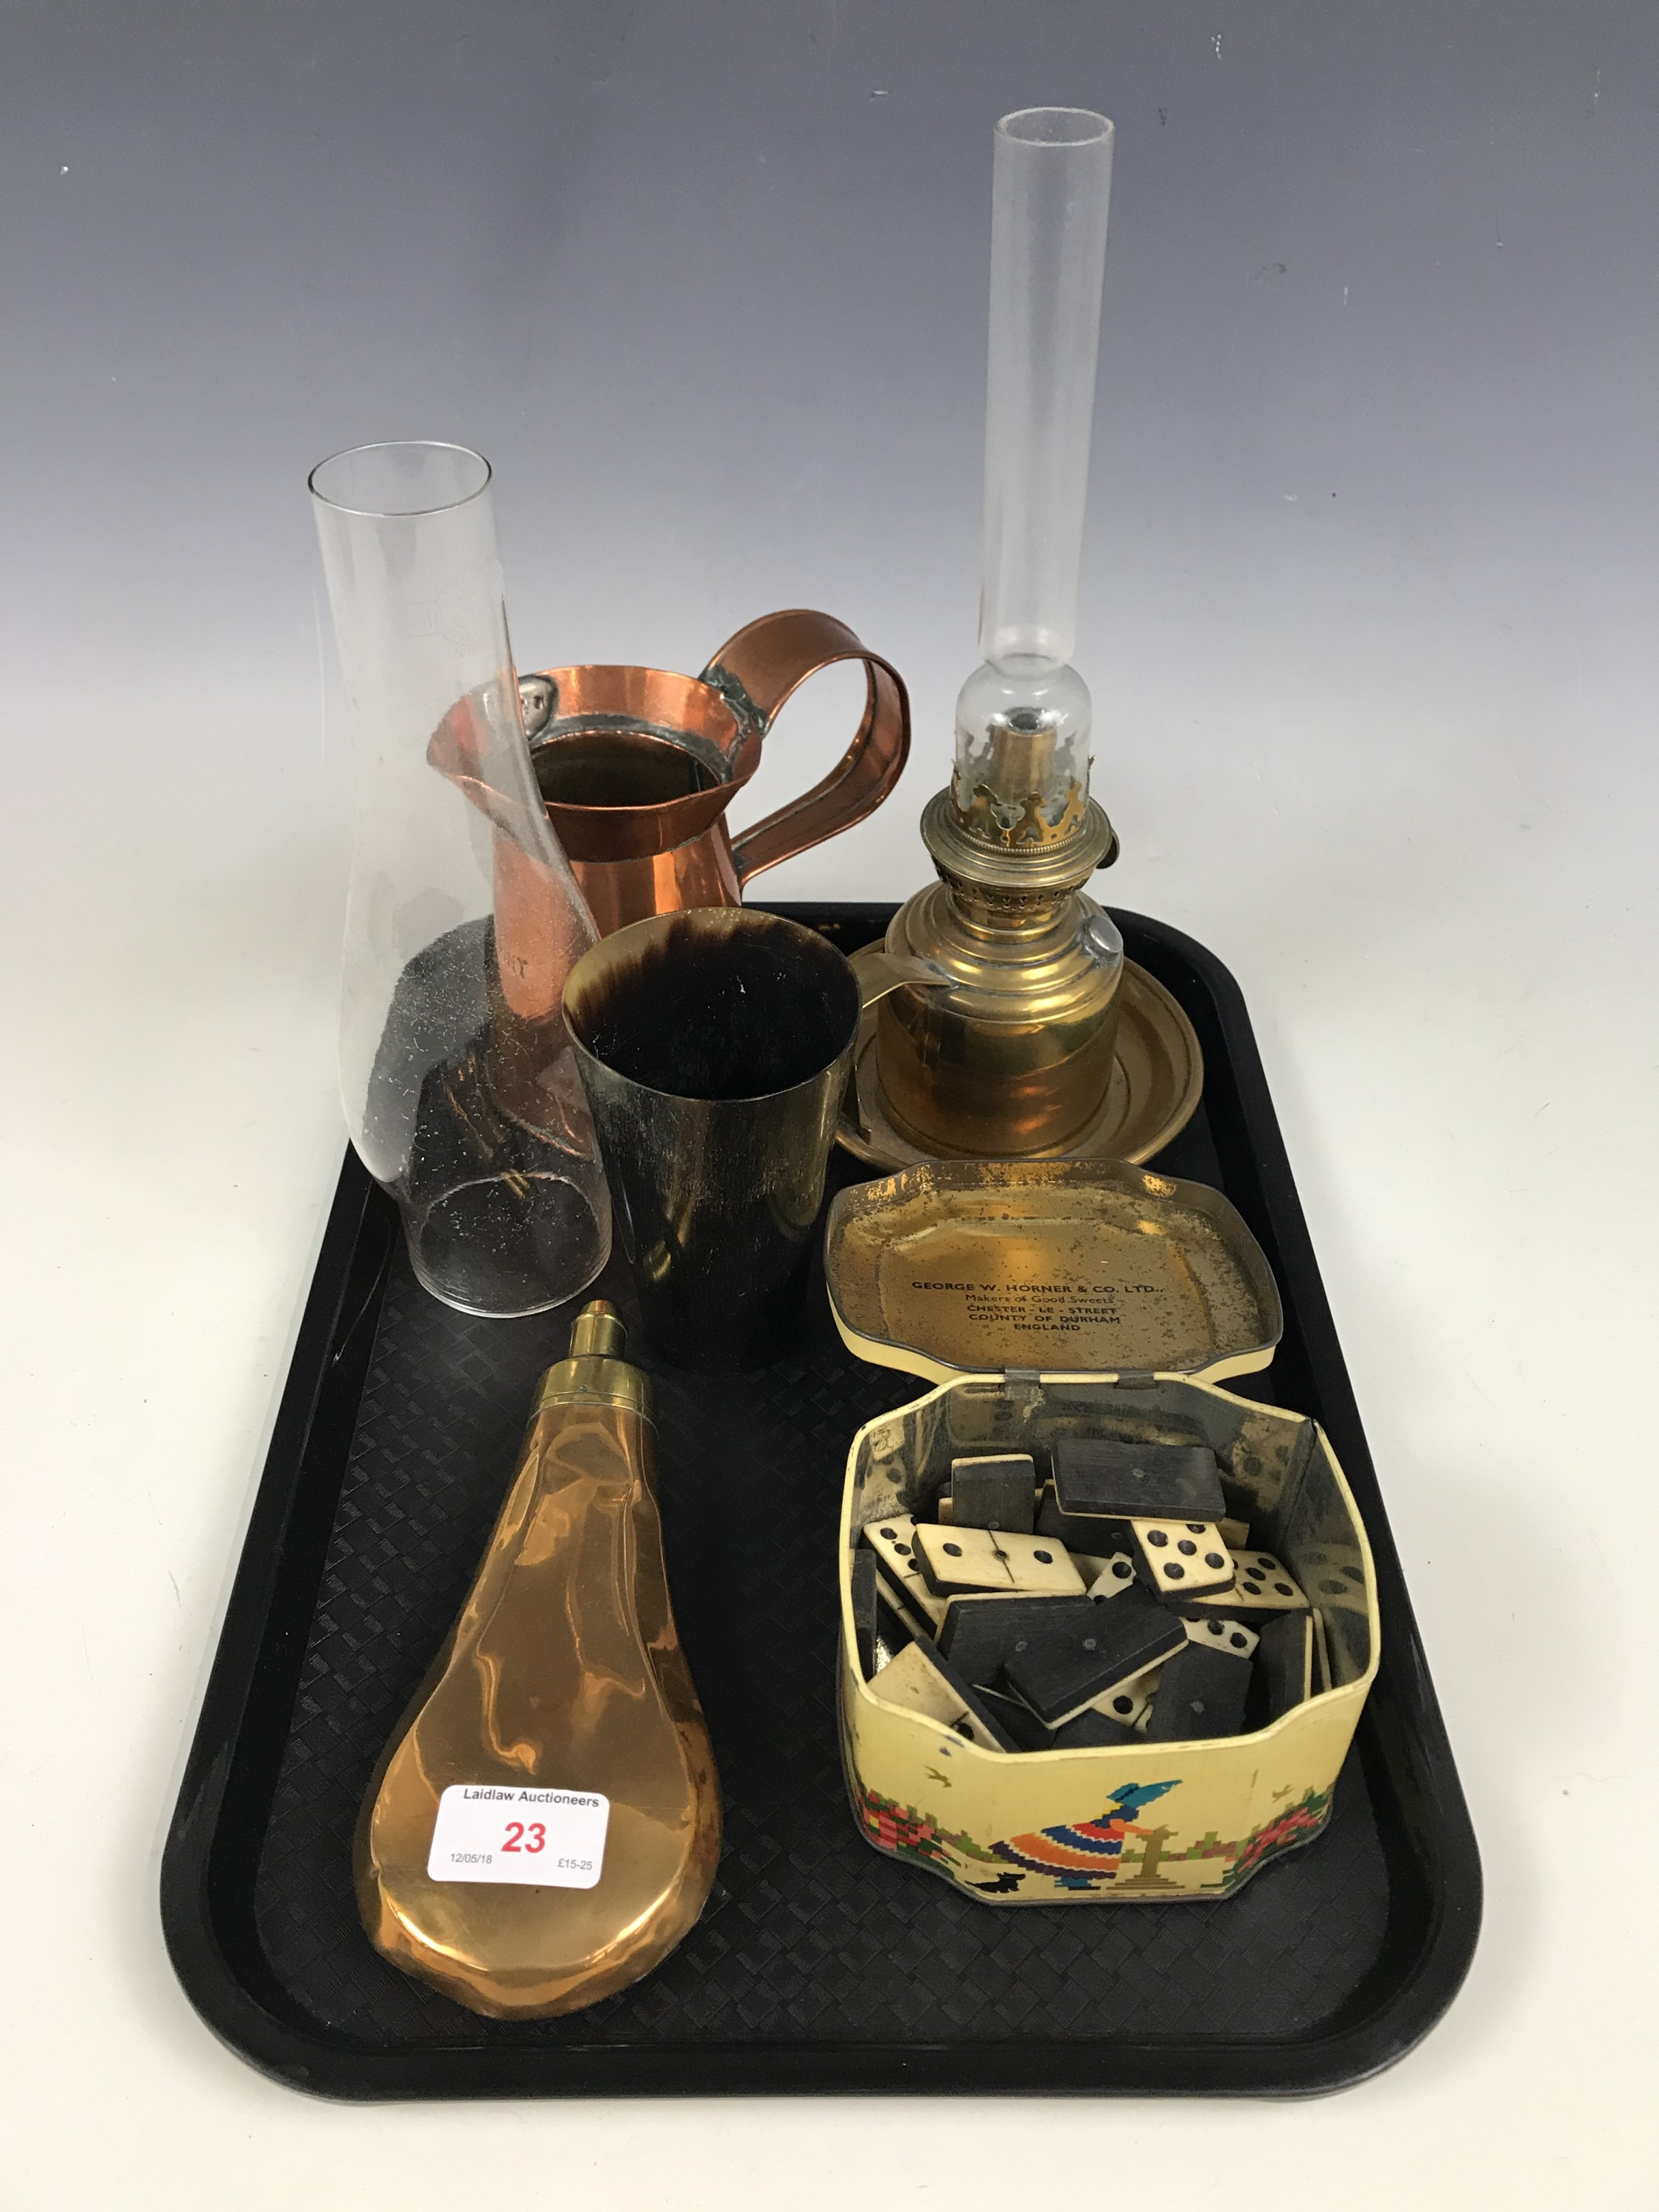 Lot 23 - Sundry collectors' items including a brass powder flask, a brass oil lamp, a horn beaker and bone